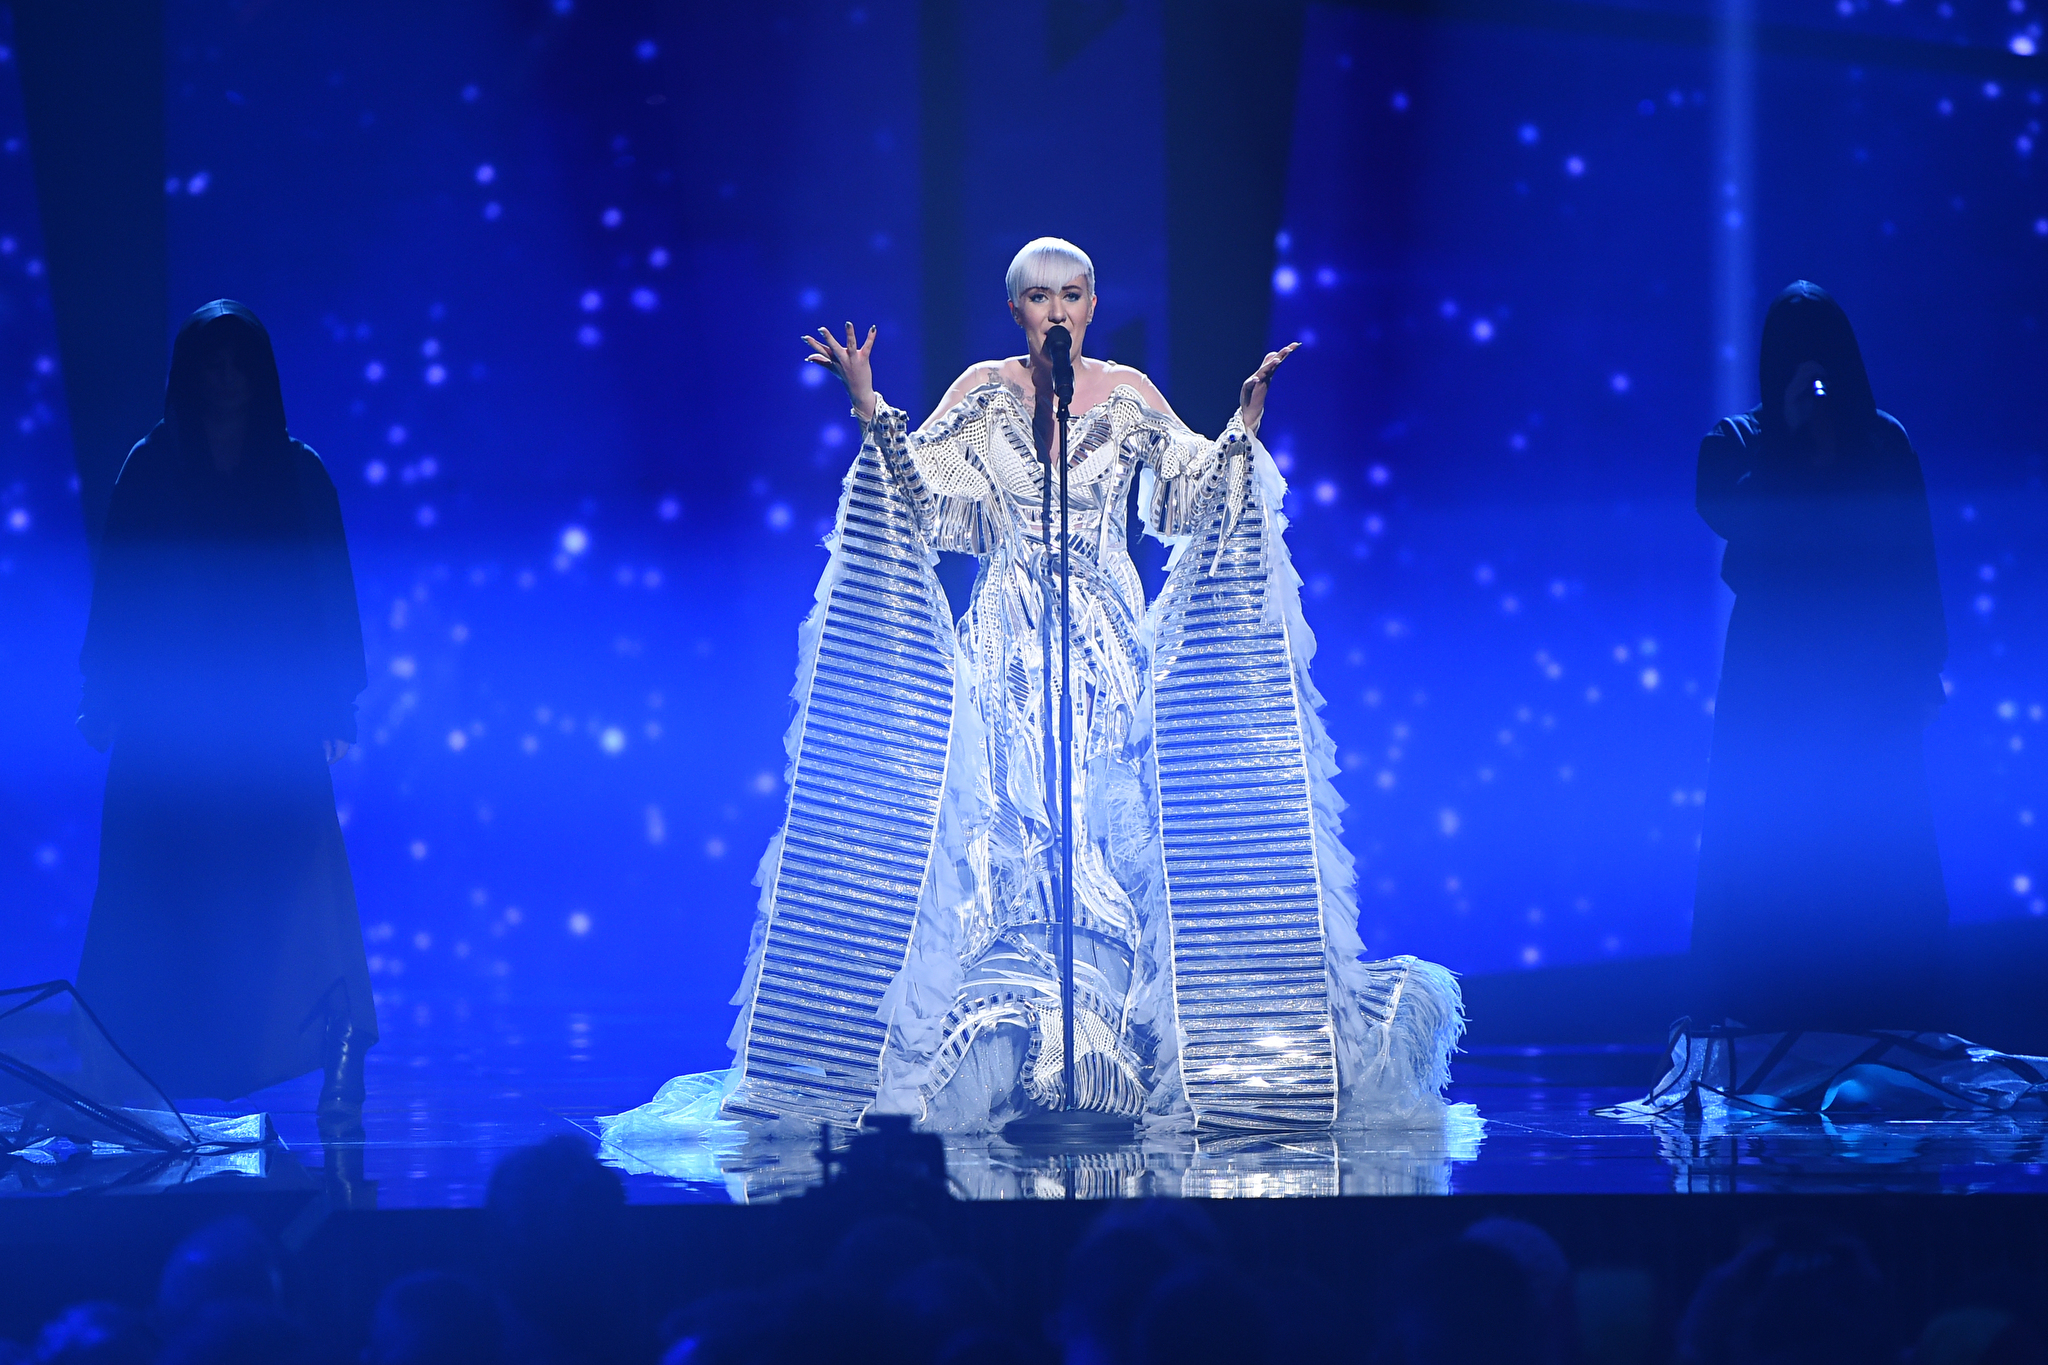 """Nina Kraljic representing Croatia with """"""""Lighthouse"""" during the Grand Final of the 61st annual Eurovision Song Contest in Stockholm, Sweden, 14 May 2016."""